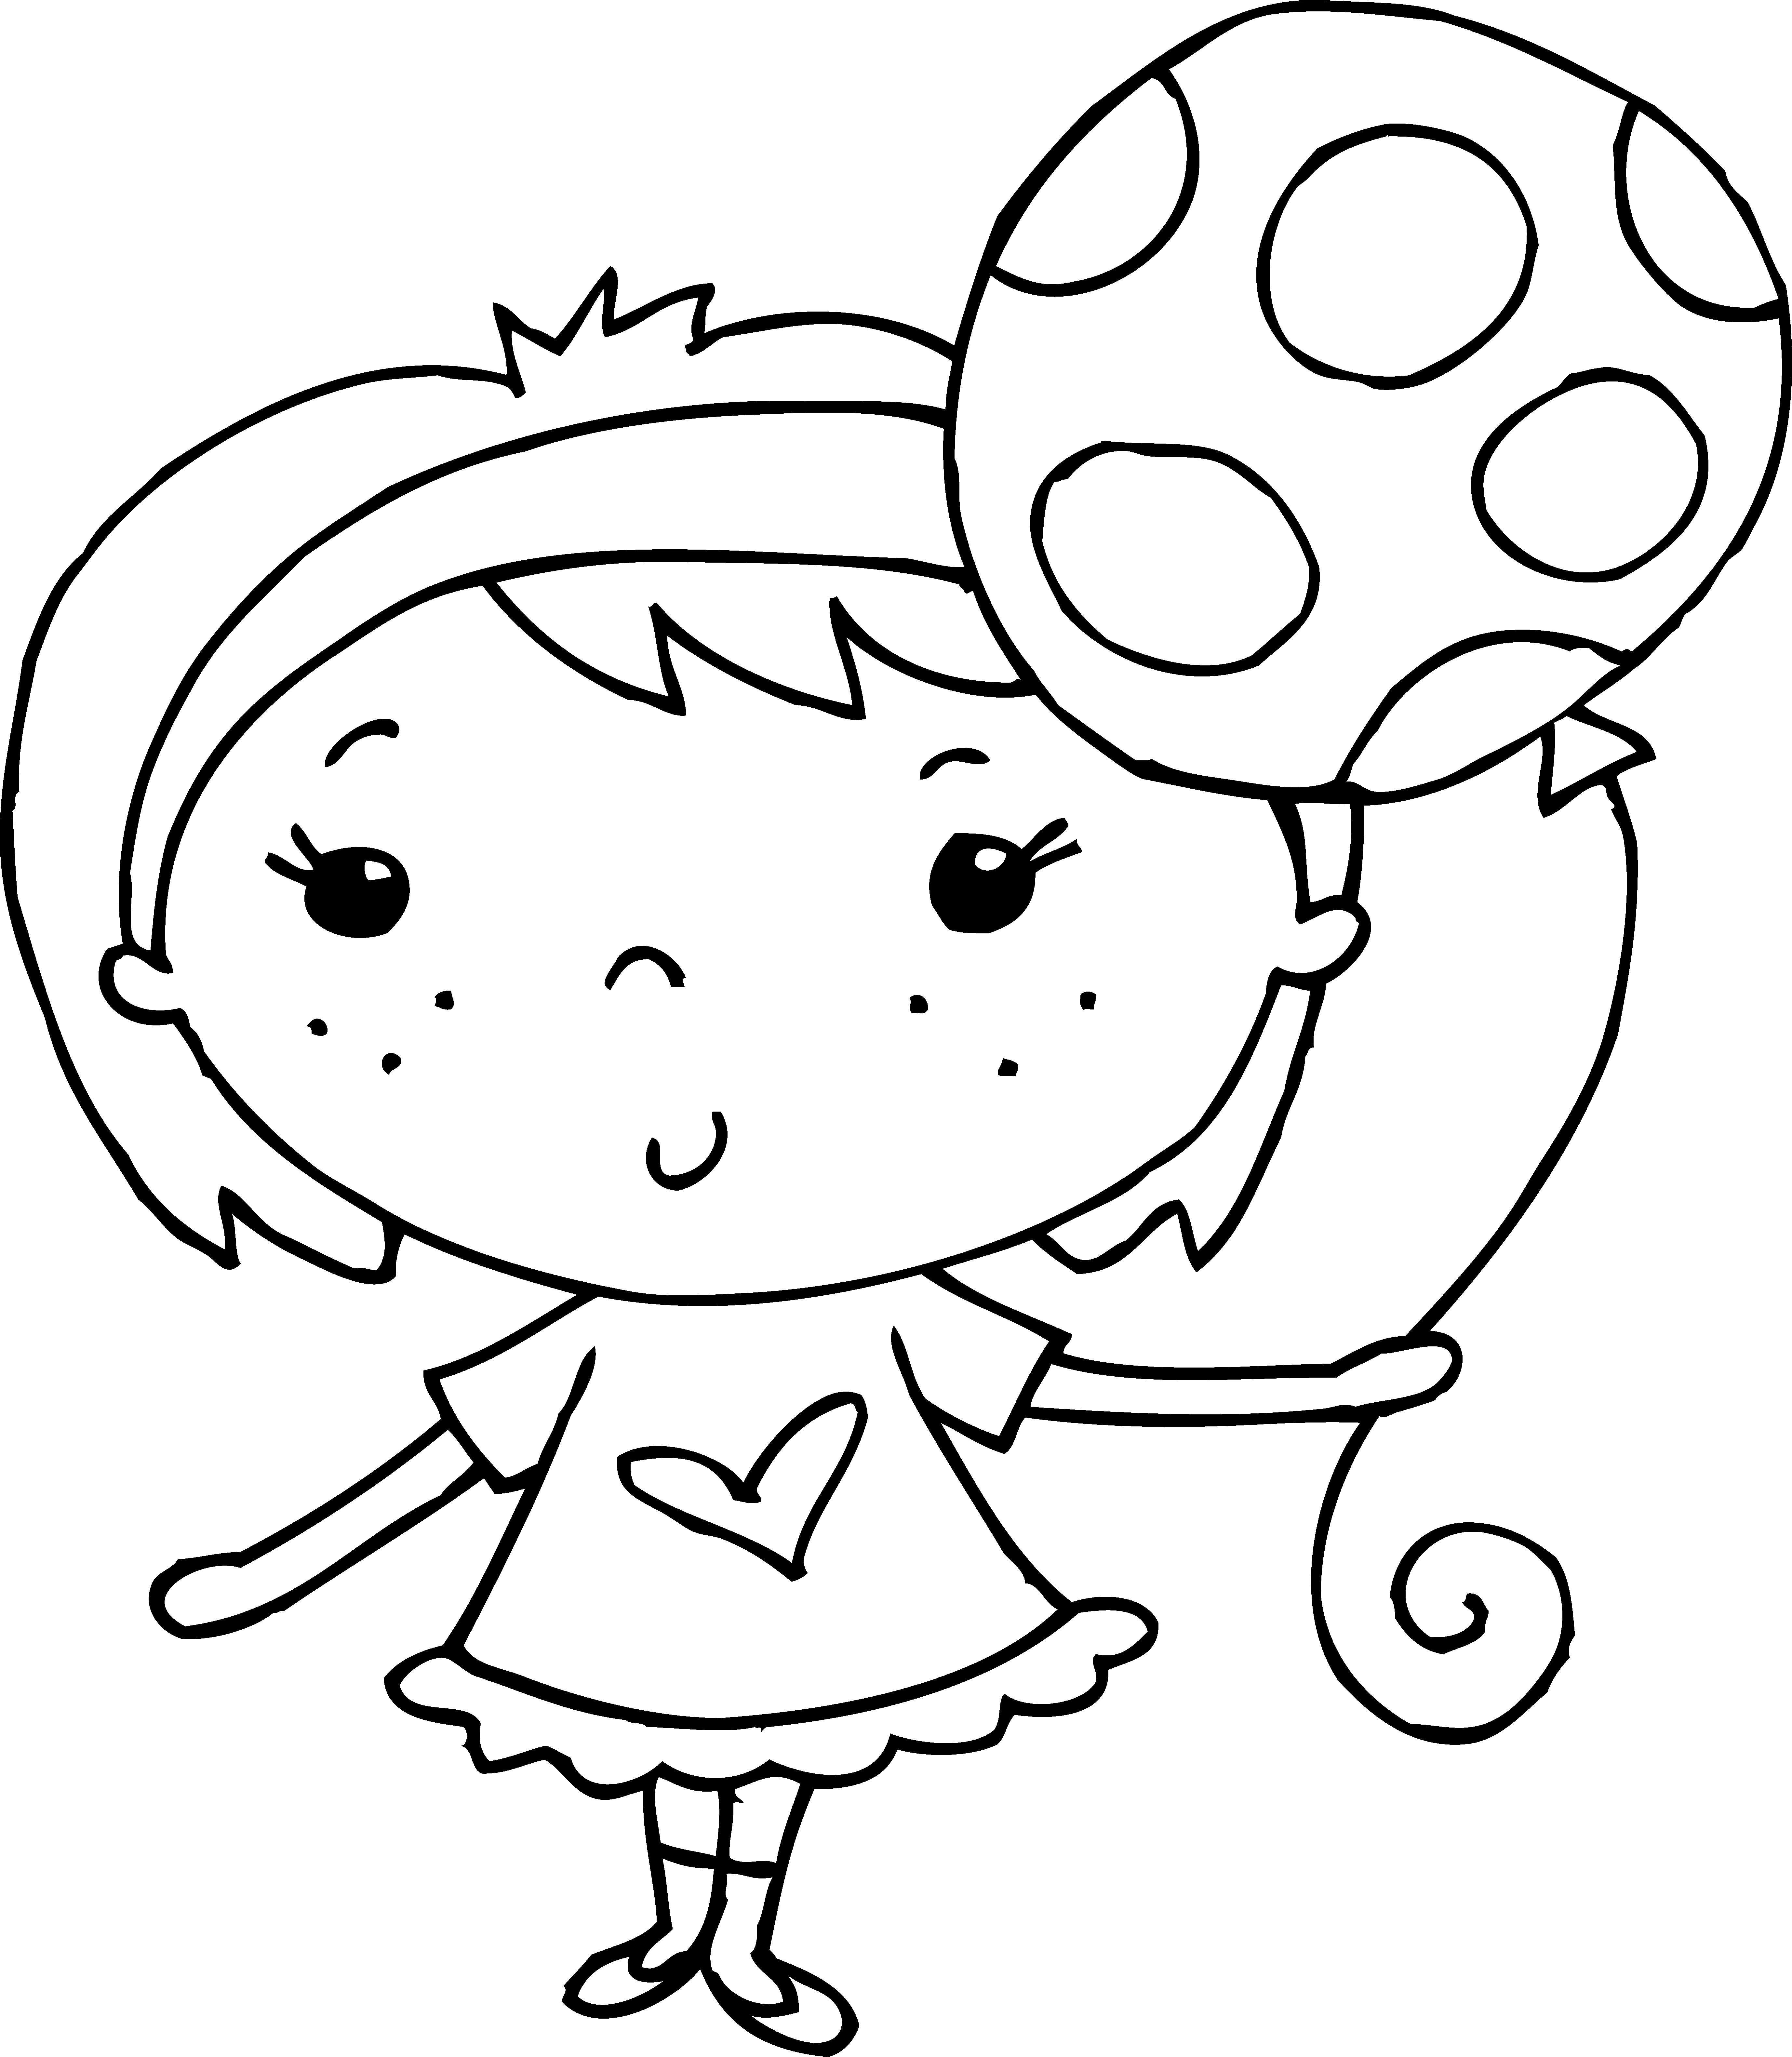 Clipart balloon head. Coloring page of girl